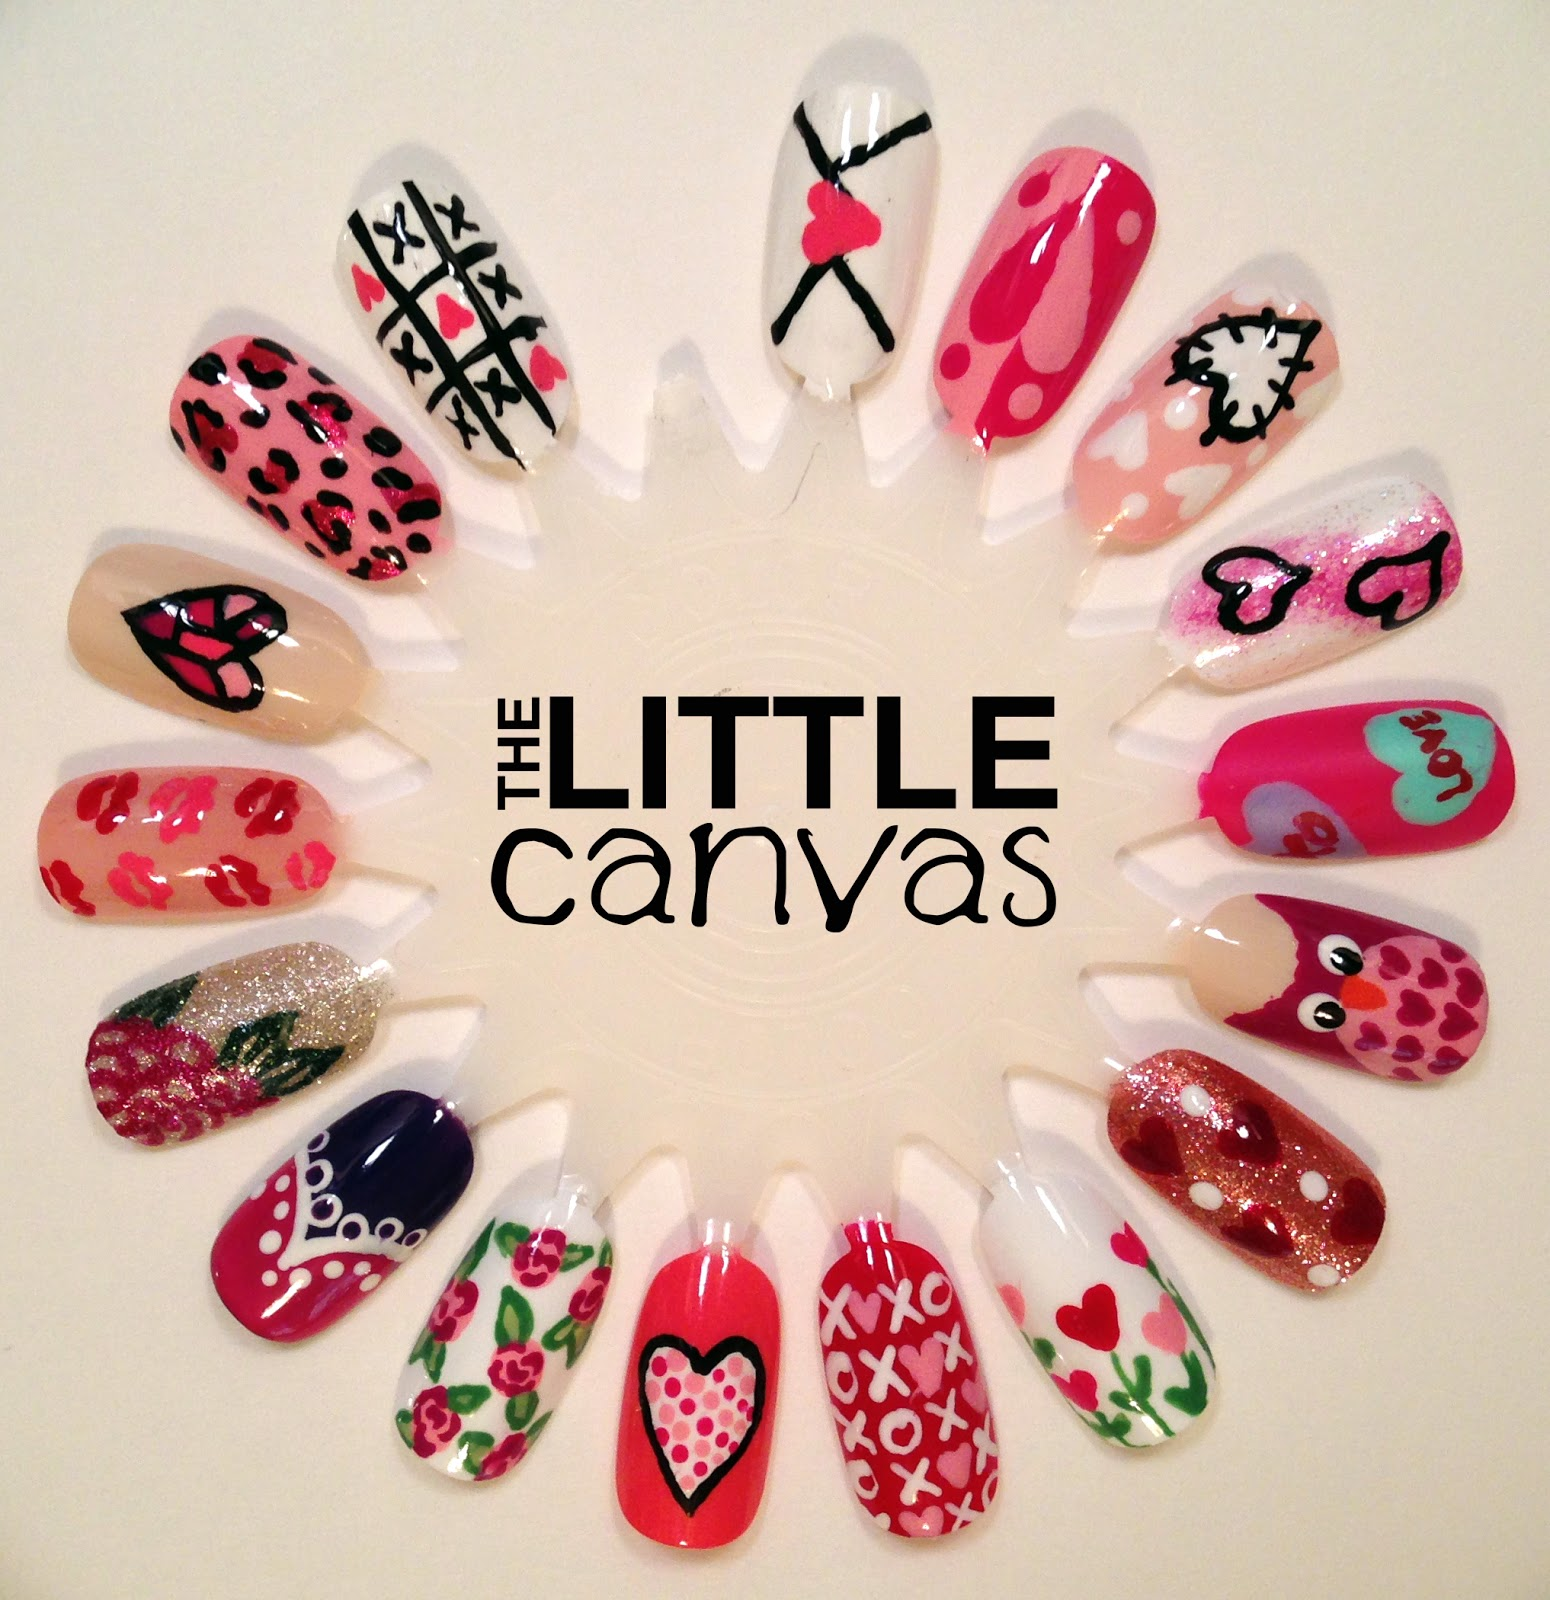 Valentines Day Nail Art Wheel - The Little Canvas